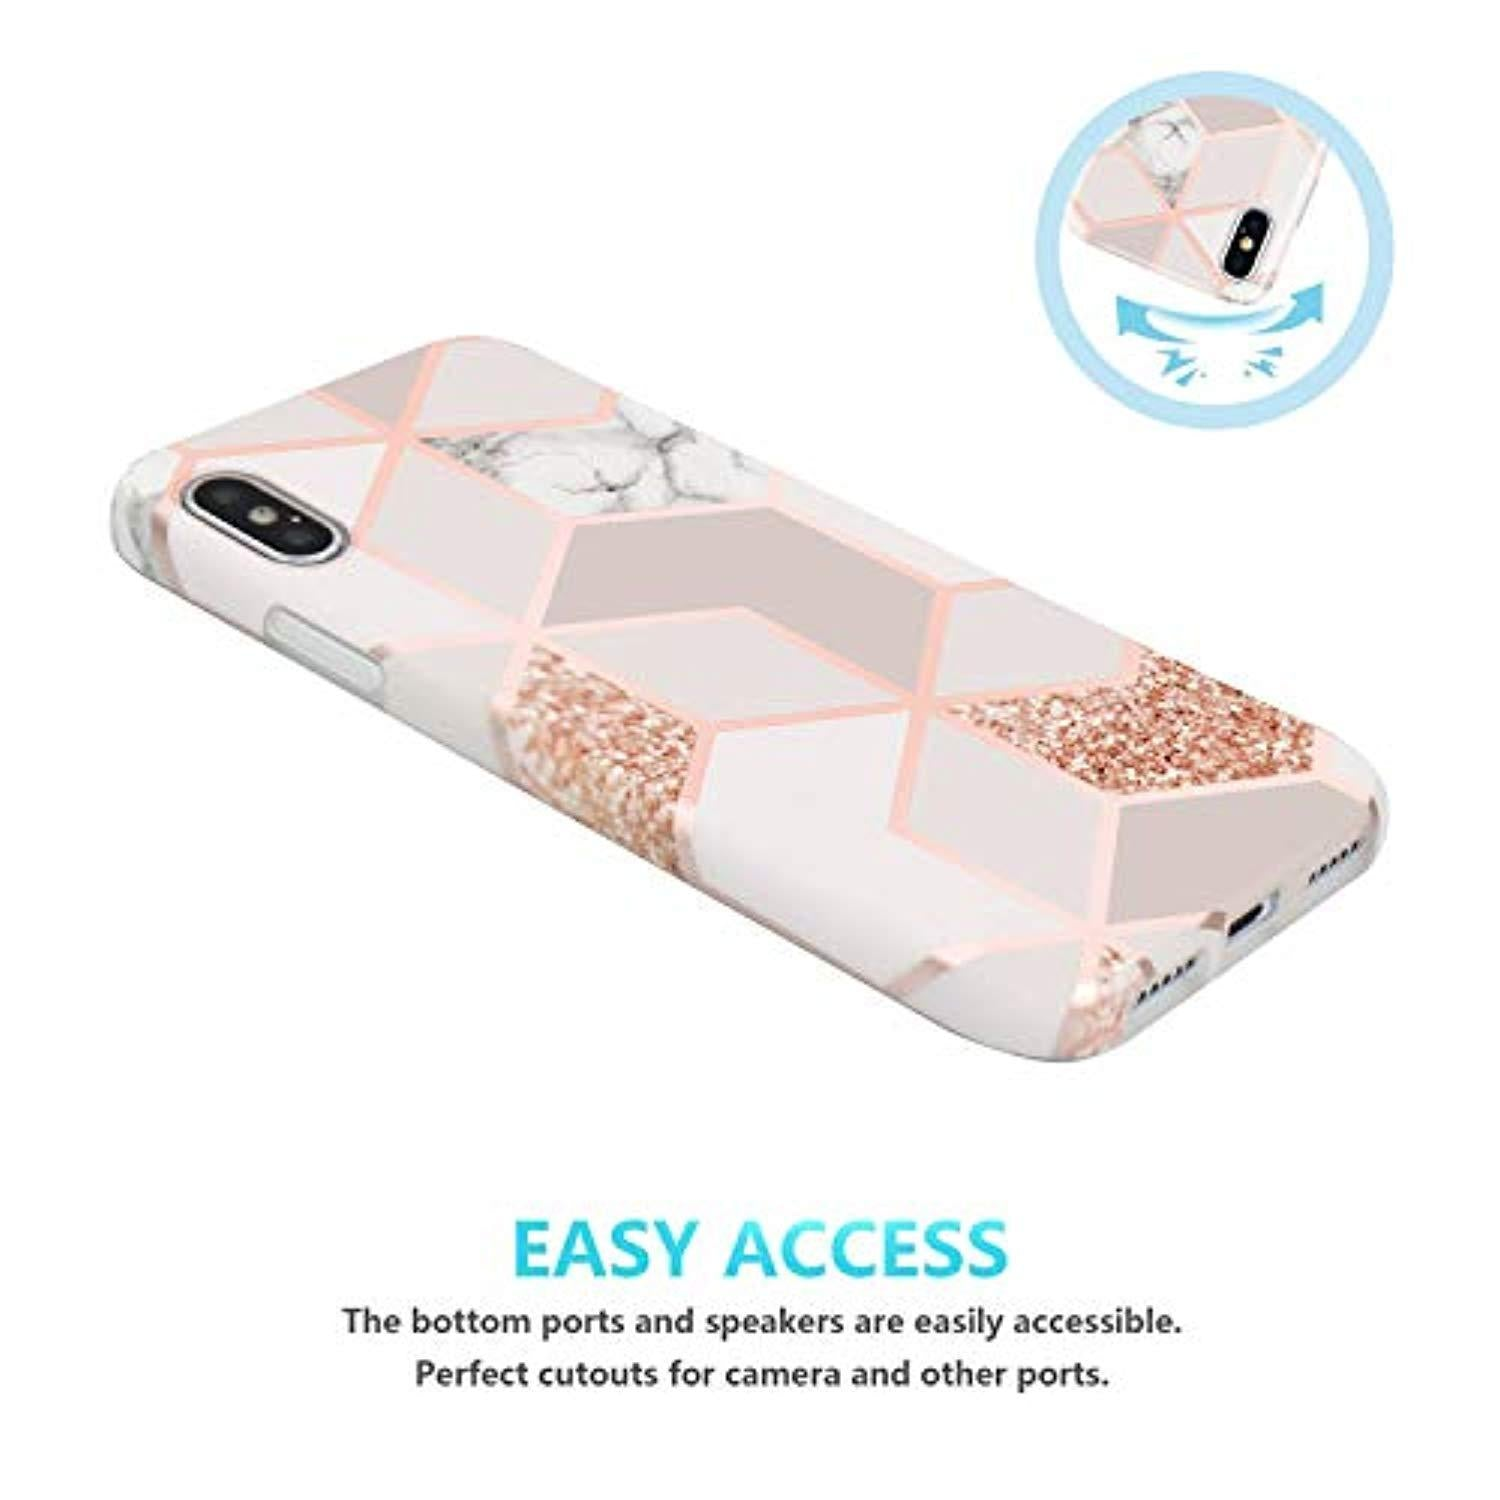 JAHOLAN iPhone 11 Case Bling Glitter Sparkle Marble Design Clear Bumper TPU Soft Rubber Silicone Cover Phone Case for iPhone 11 6.1 inch 2019 Rose Gold